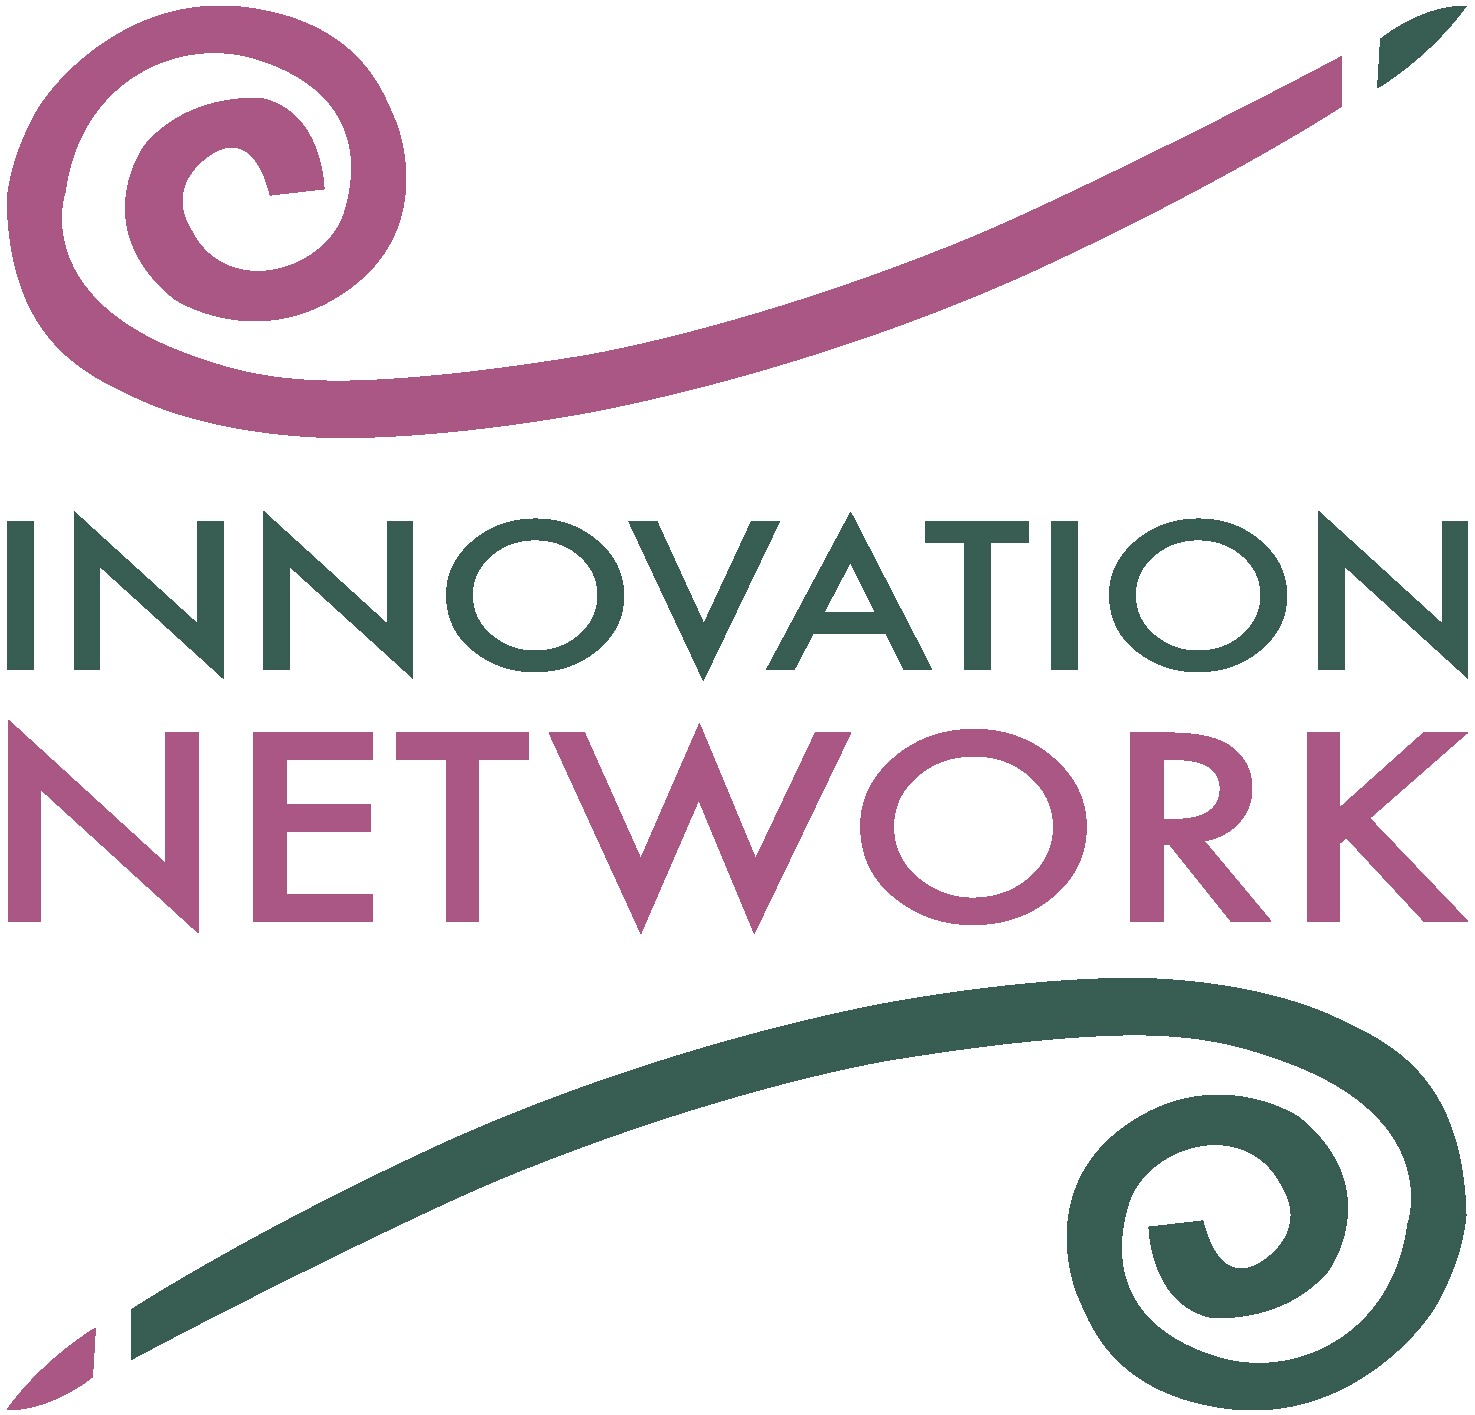 The Innovation Network Logo